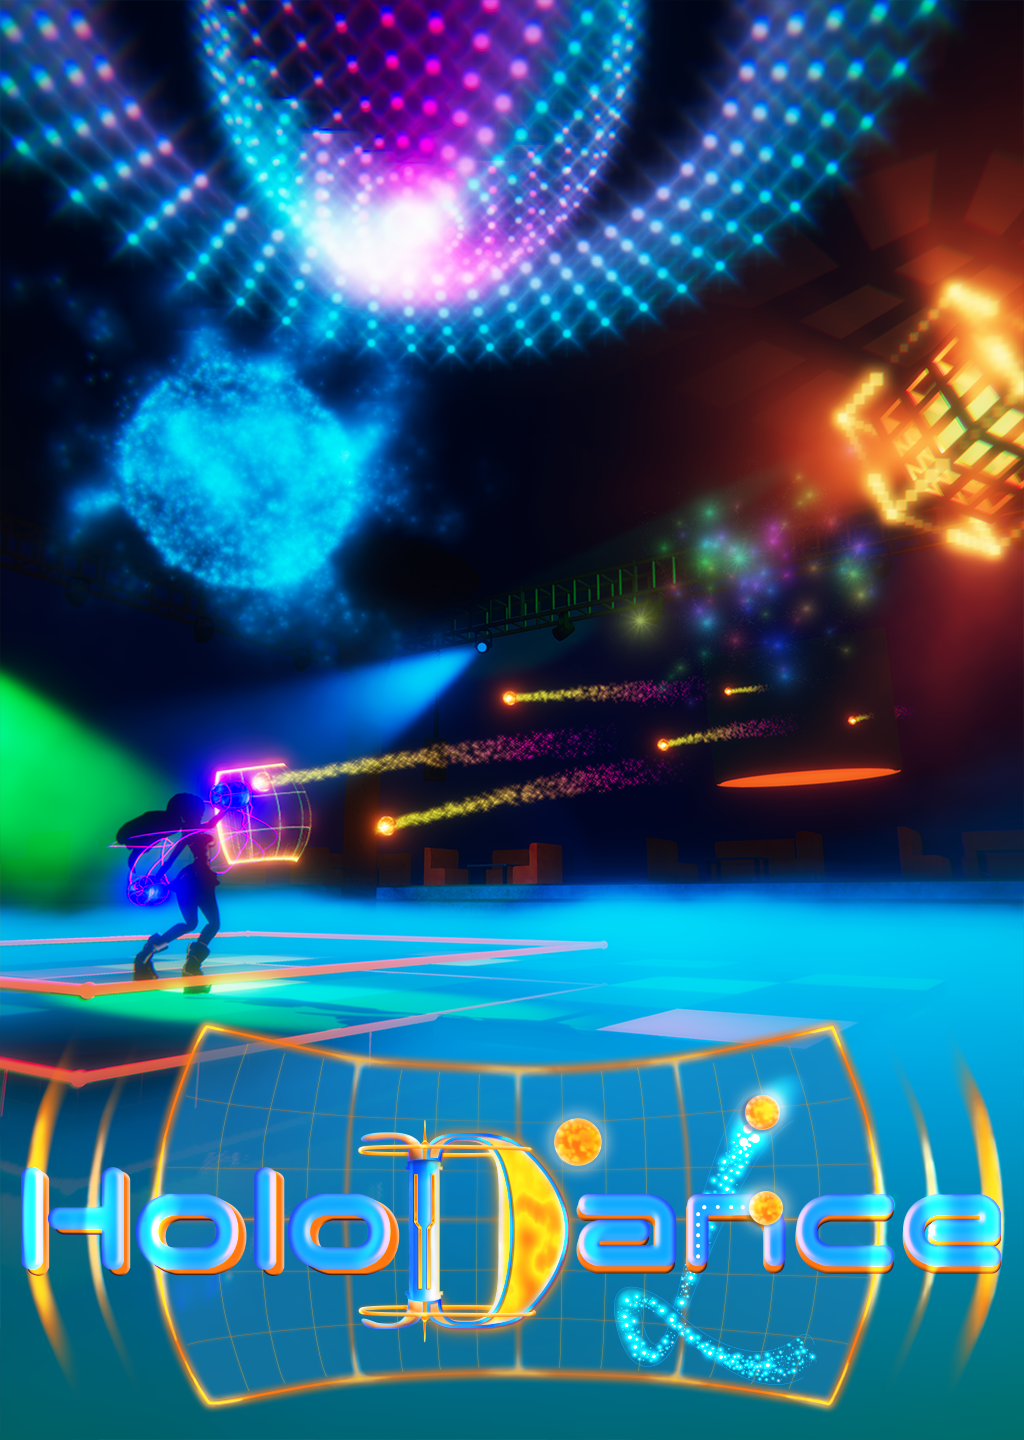 07_Official-Holodance-Poster-V0_8-CC-BY-40_1440x1024.png